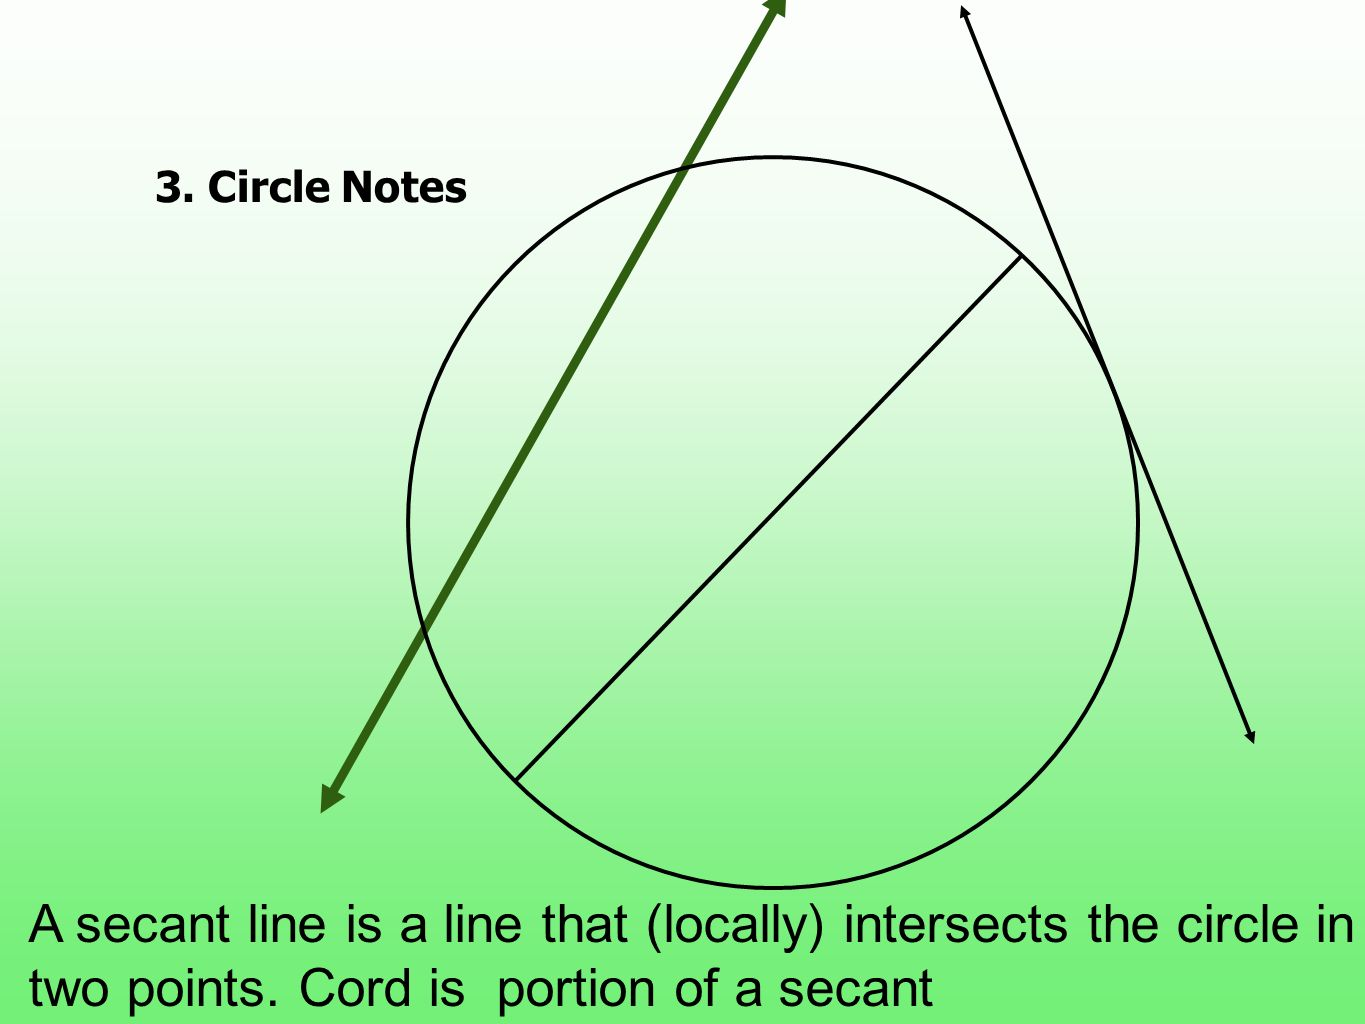 3.Circle Notes A secant line is a line that (locally) intersects the circle in two points. Cord is portion of a secant